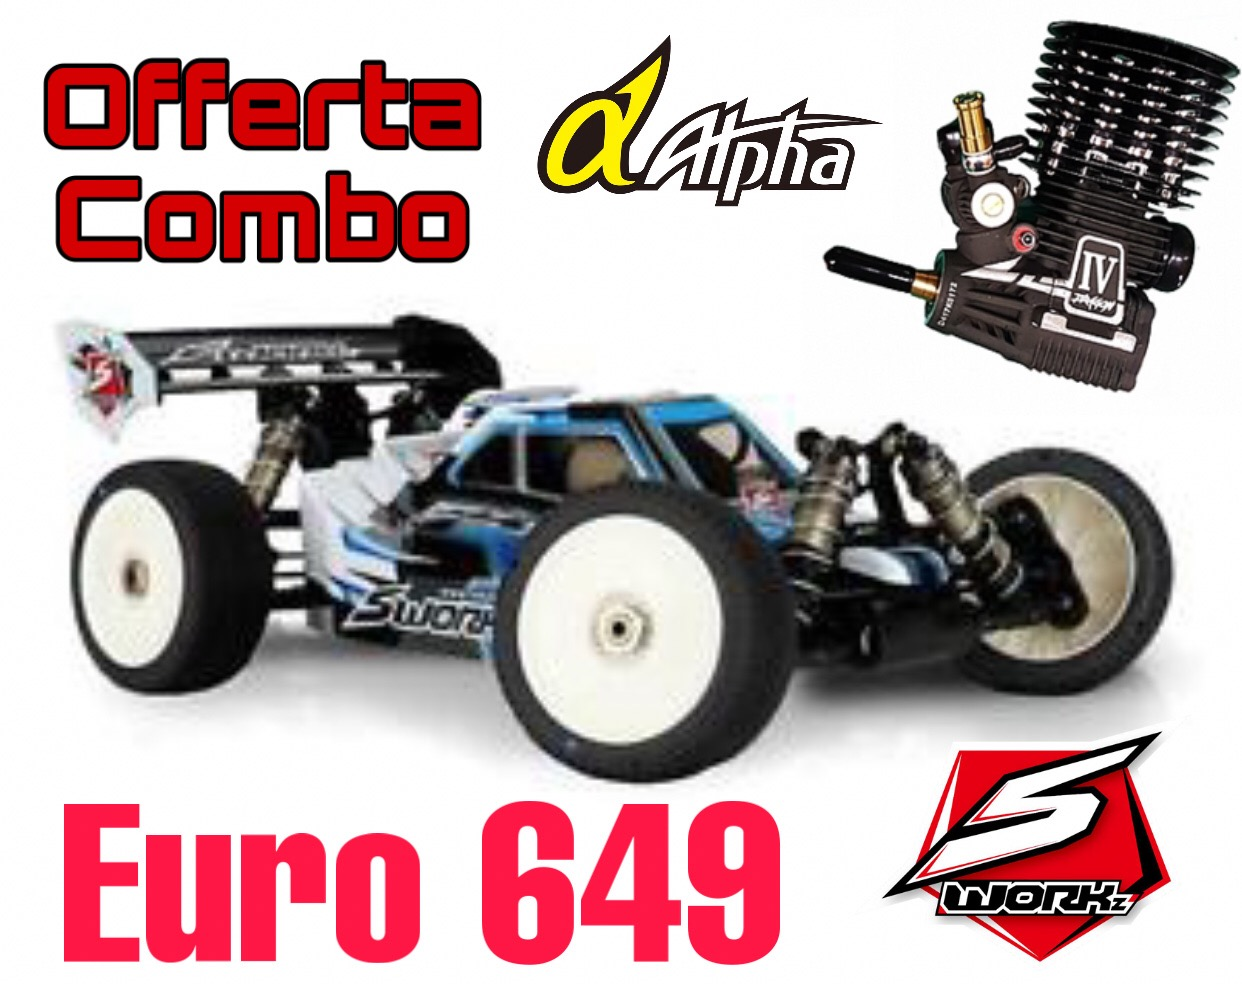 COMBO SWORKz S35-3 1/8 Pro Nitro Buggy Kit + Apha Dragon III